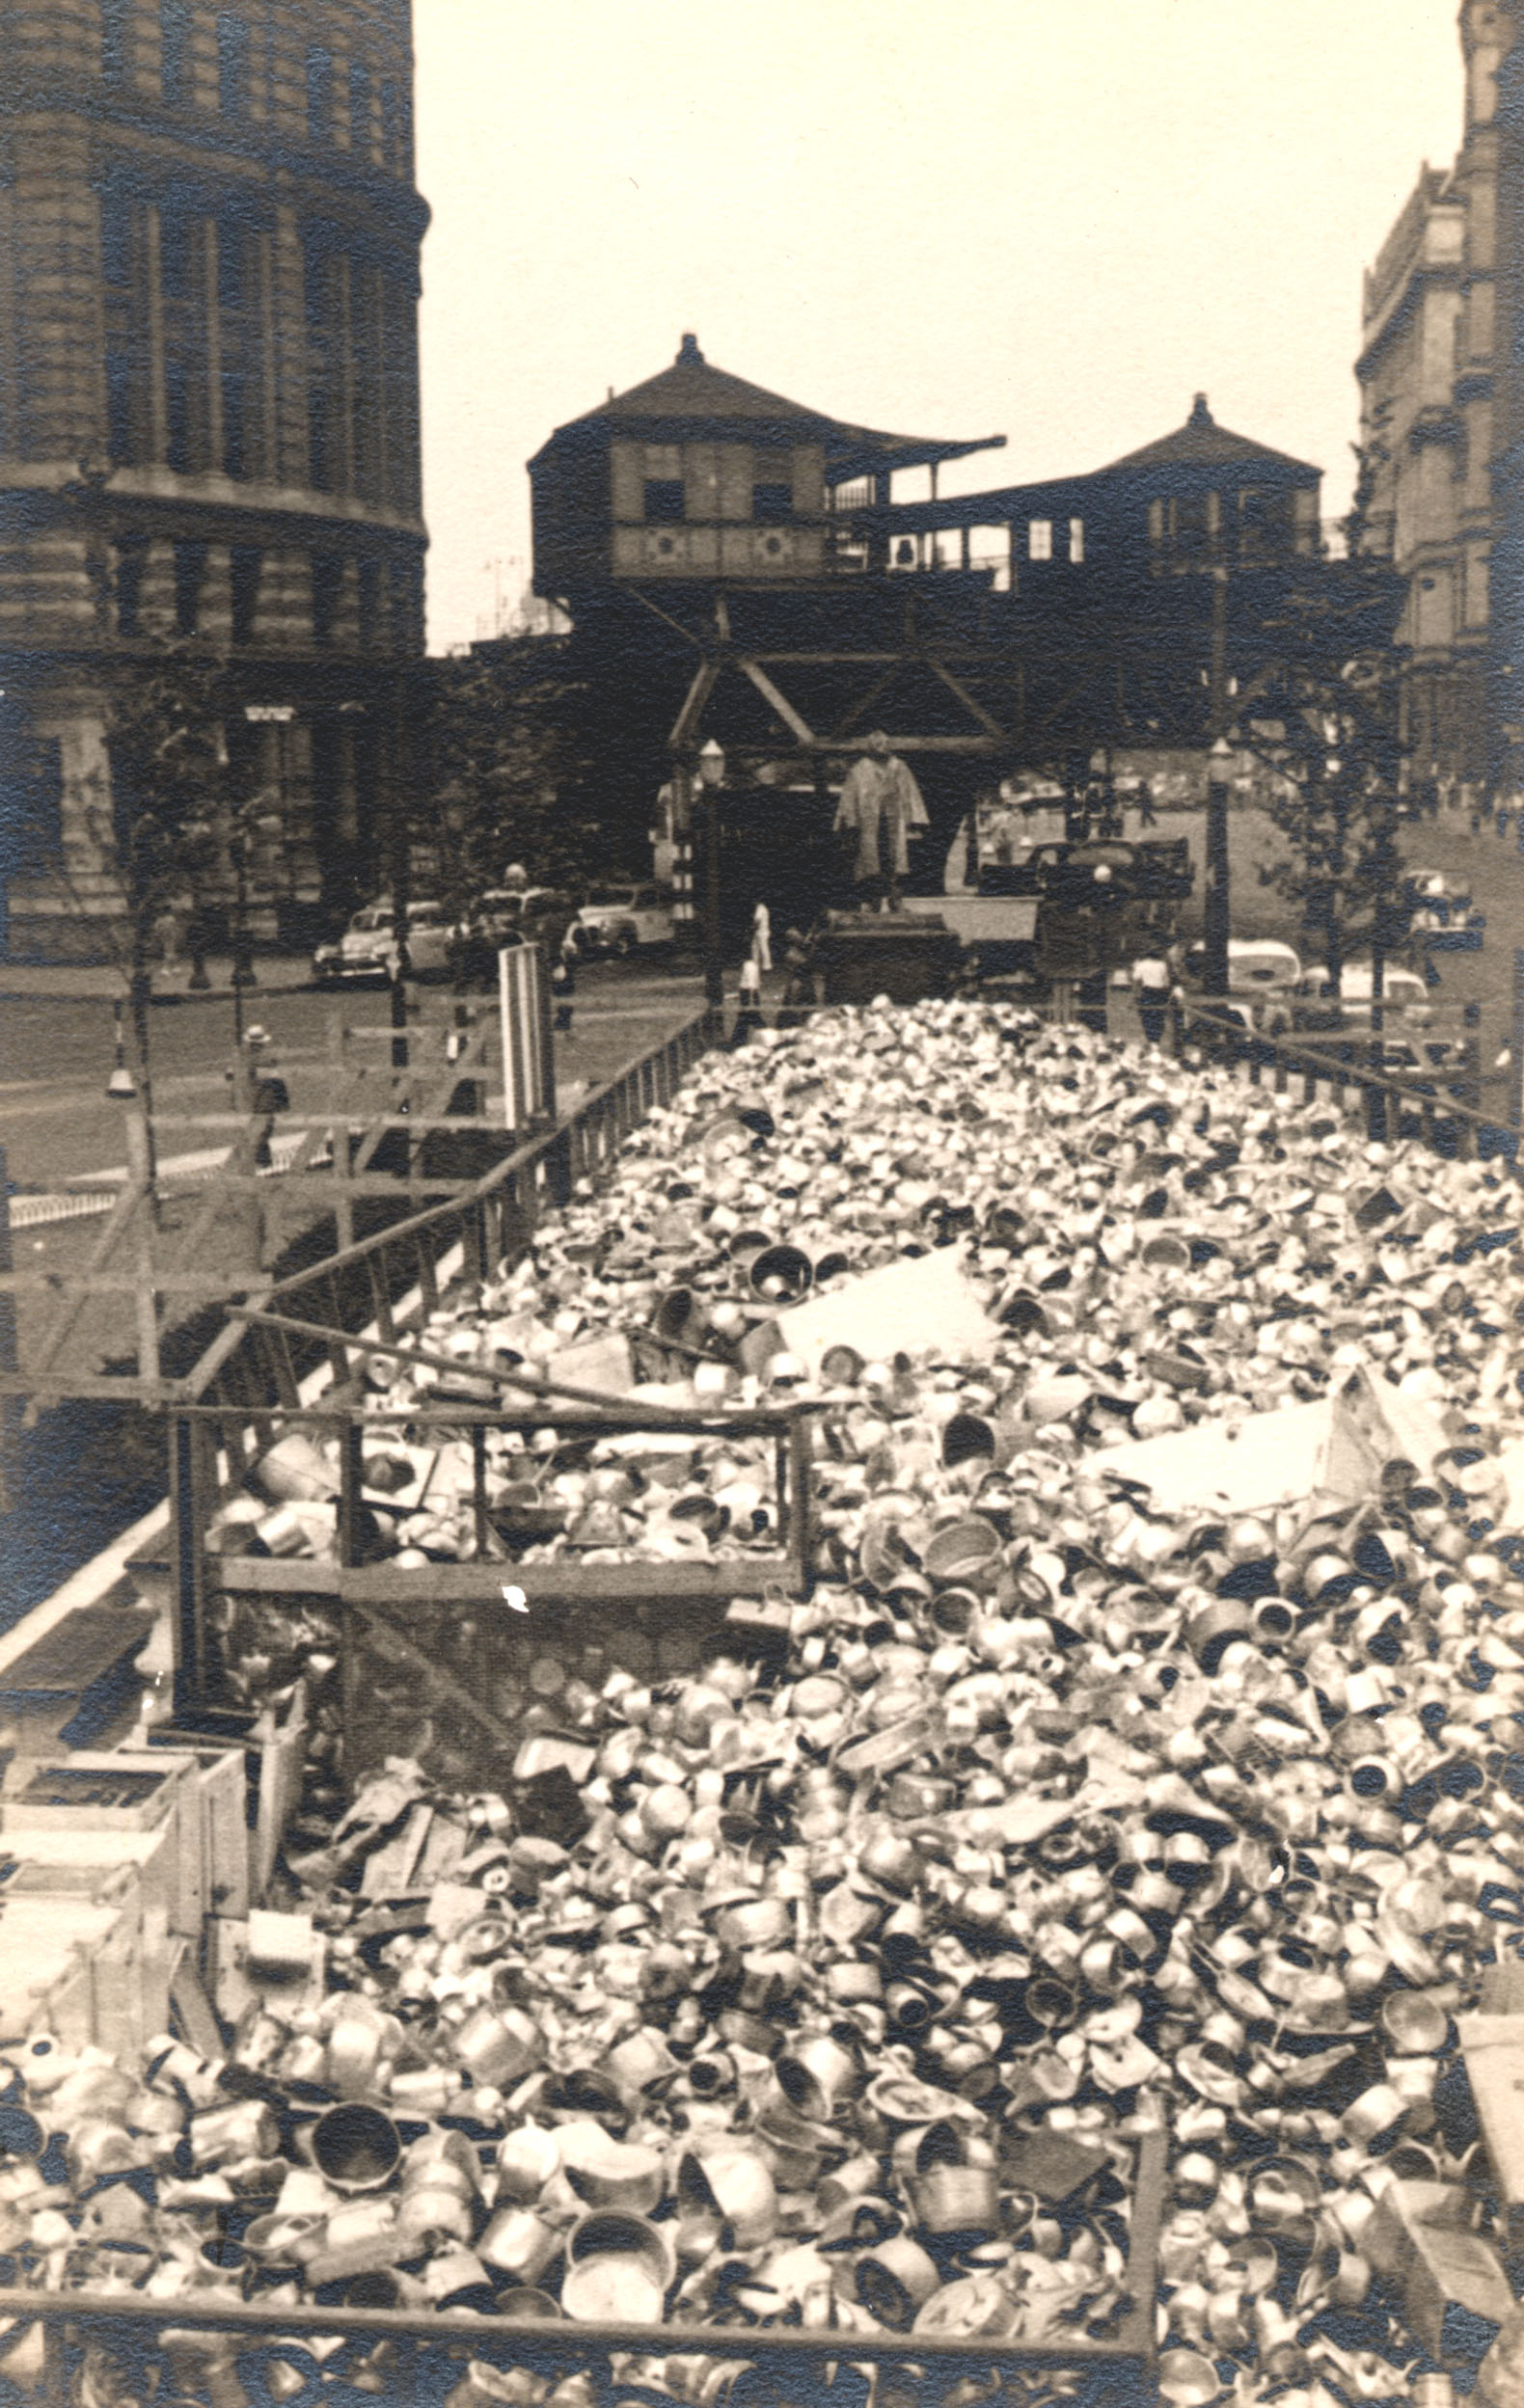 A Natural History Of Garbage Managing Waste In The Past